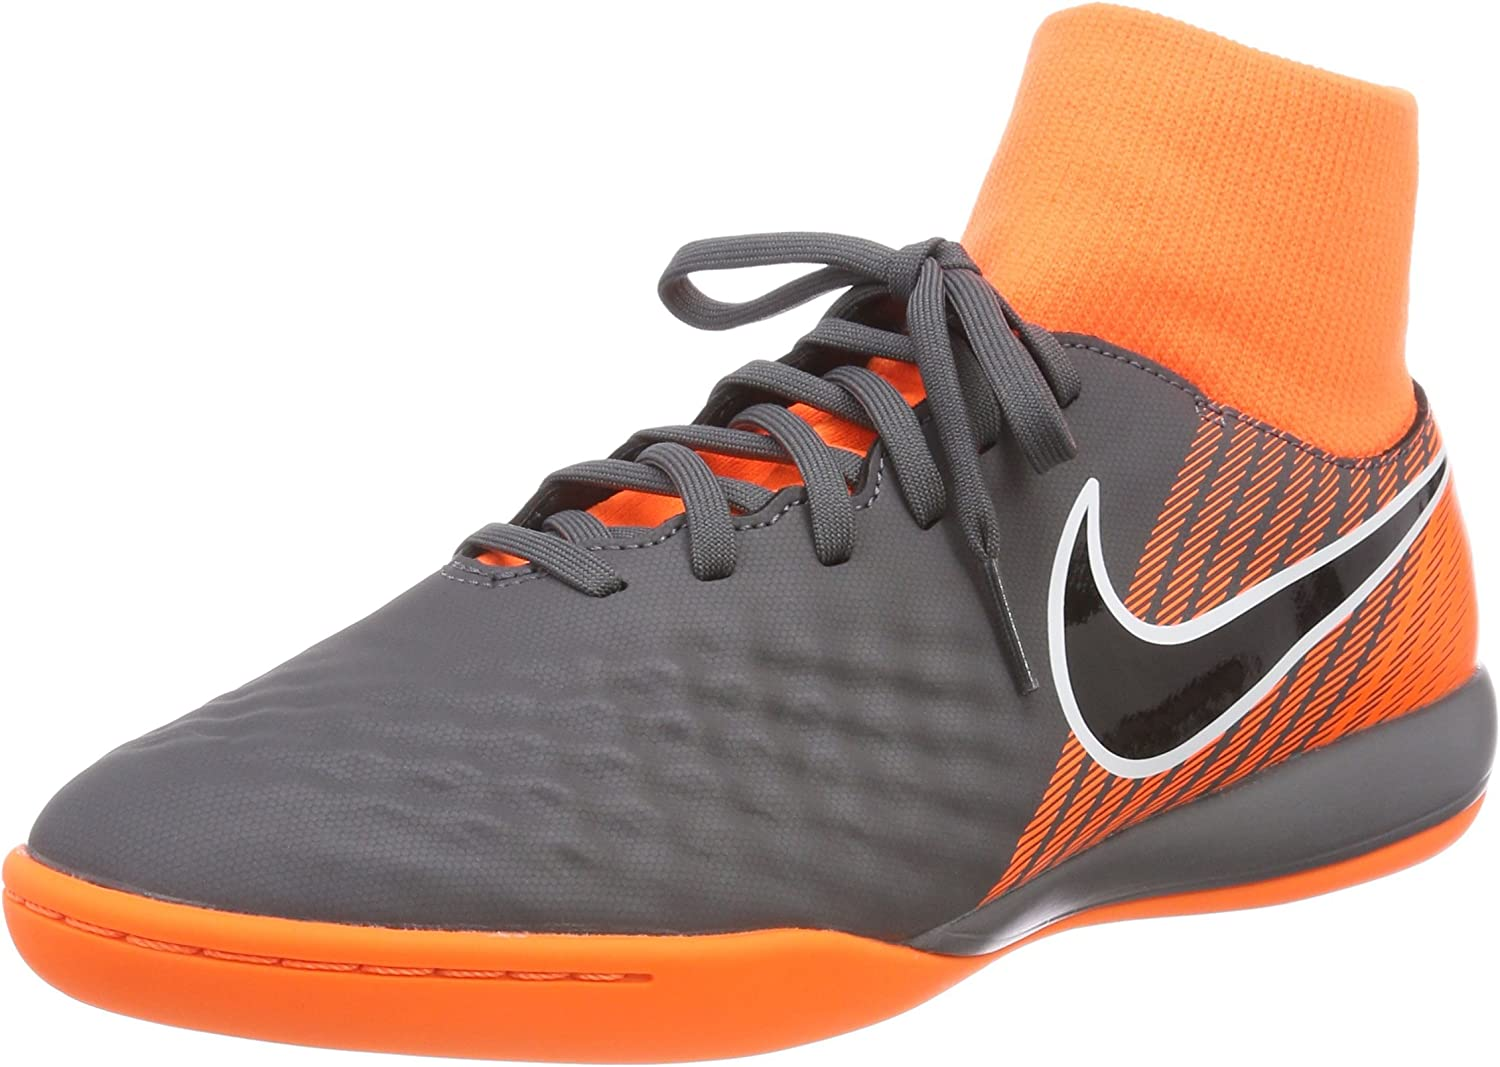 Nike Men's's Magista Obrax 2 Academy Dynamic Fit Ic Football Boots